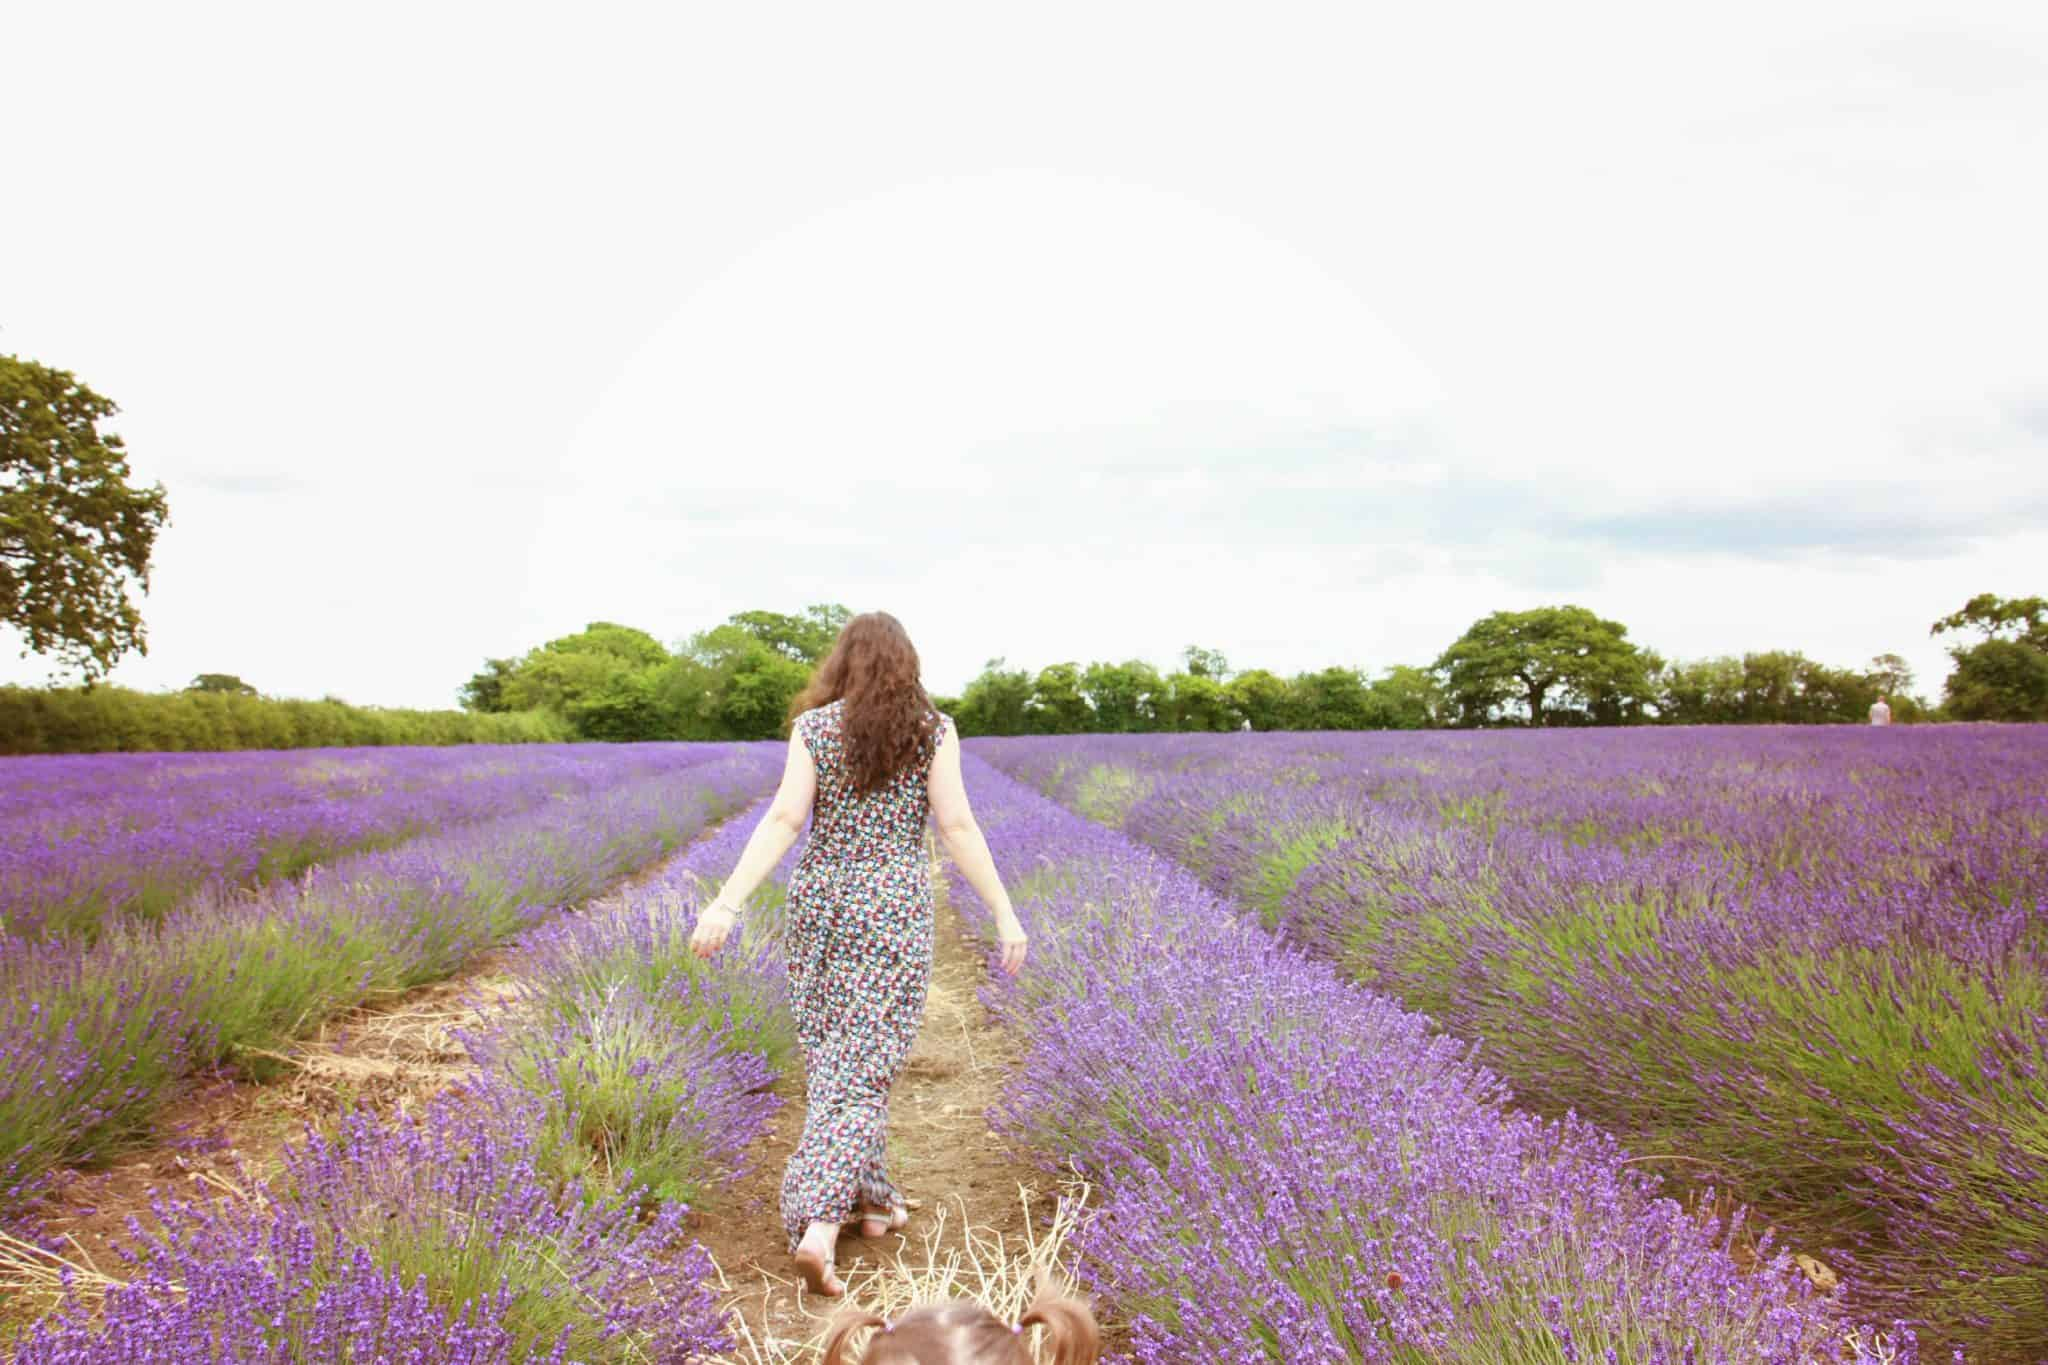 Back view of French Connection maxi dress, photographed at the beautiful Somerset Lavender fields